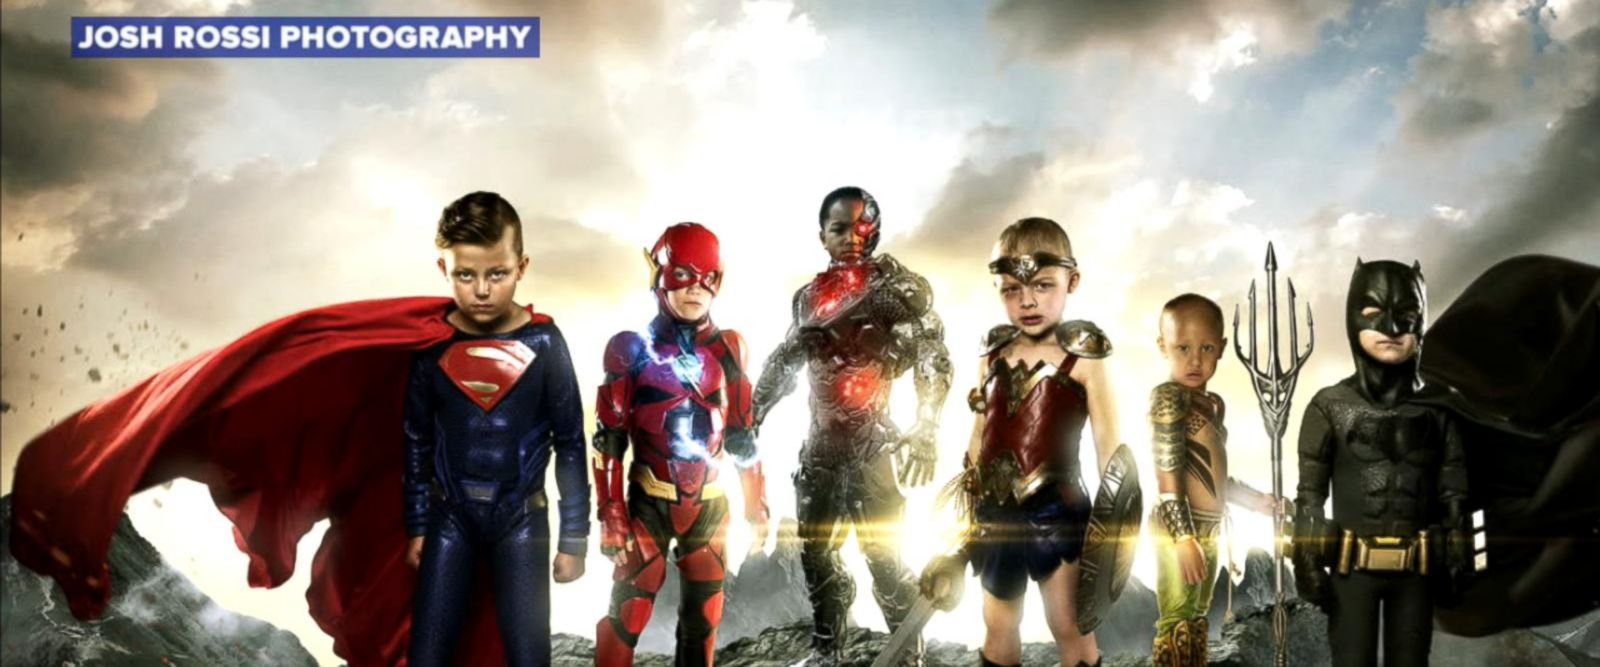 VIDEO: Photographer turns kids with disabilities into Justice League superheroes